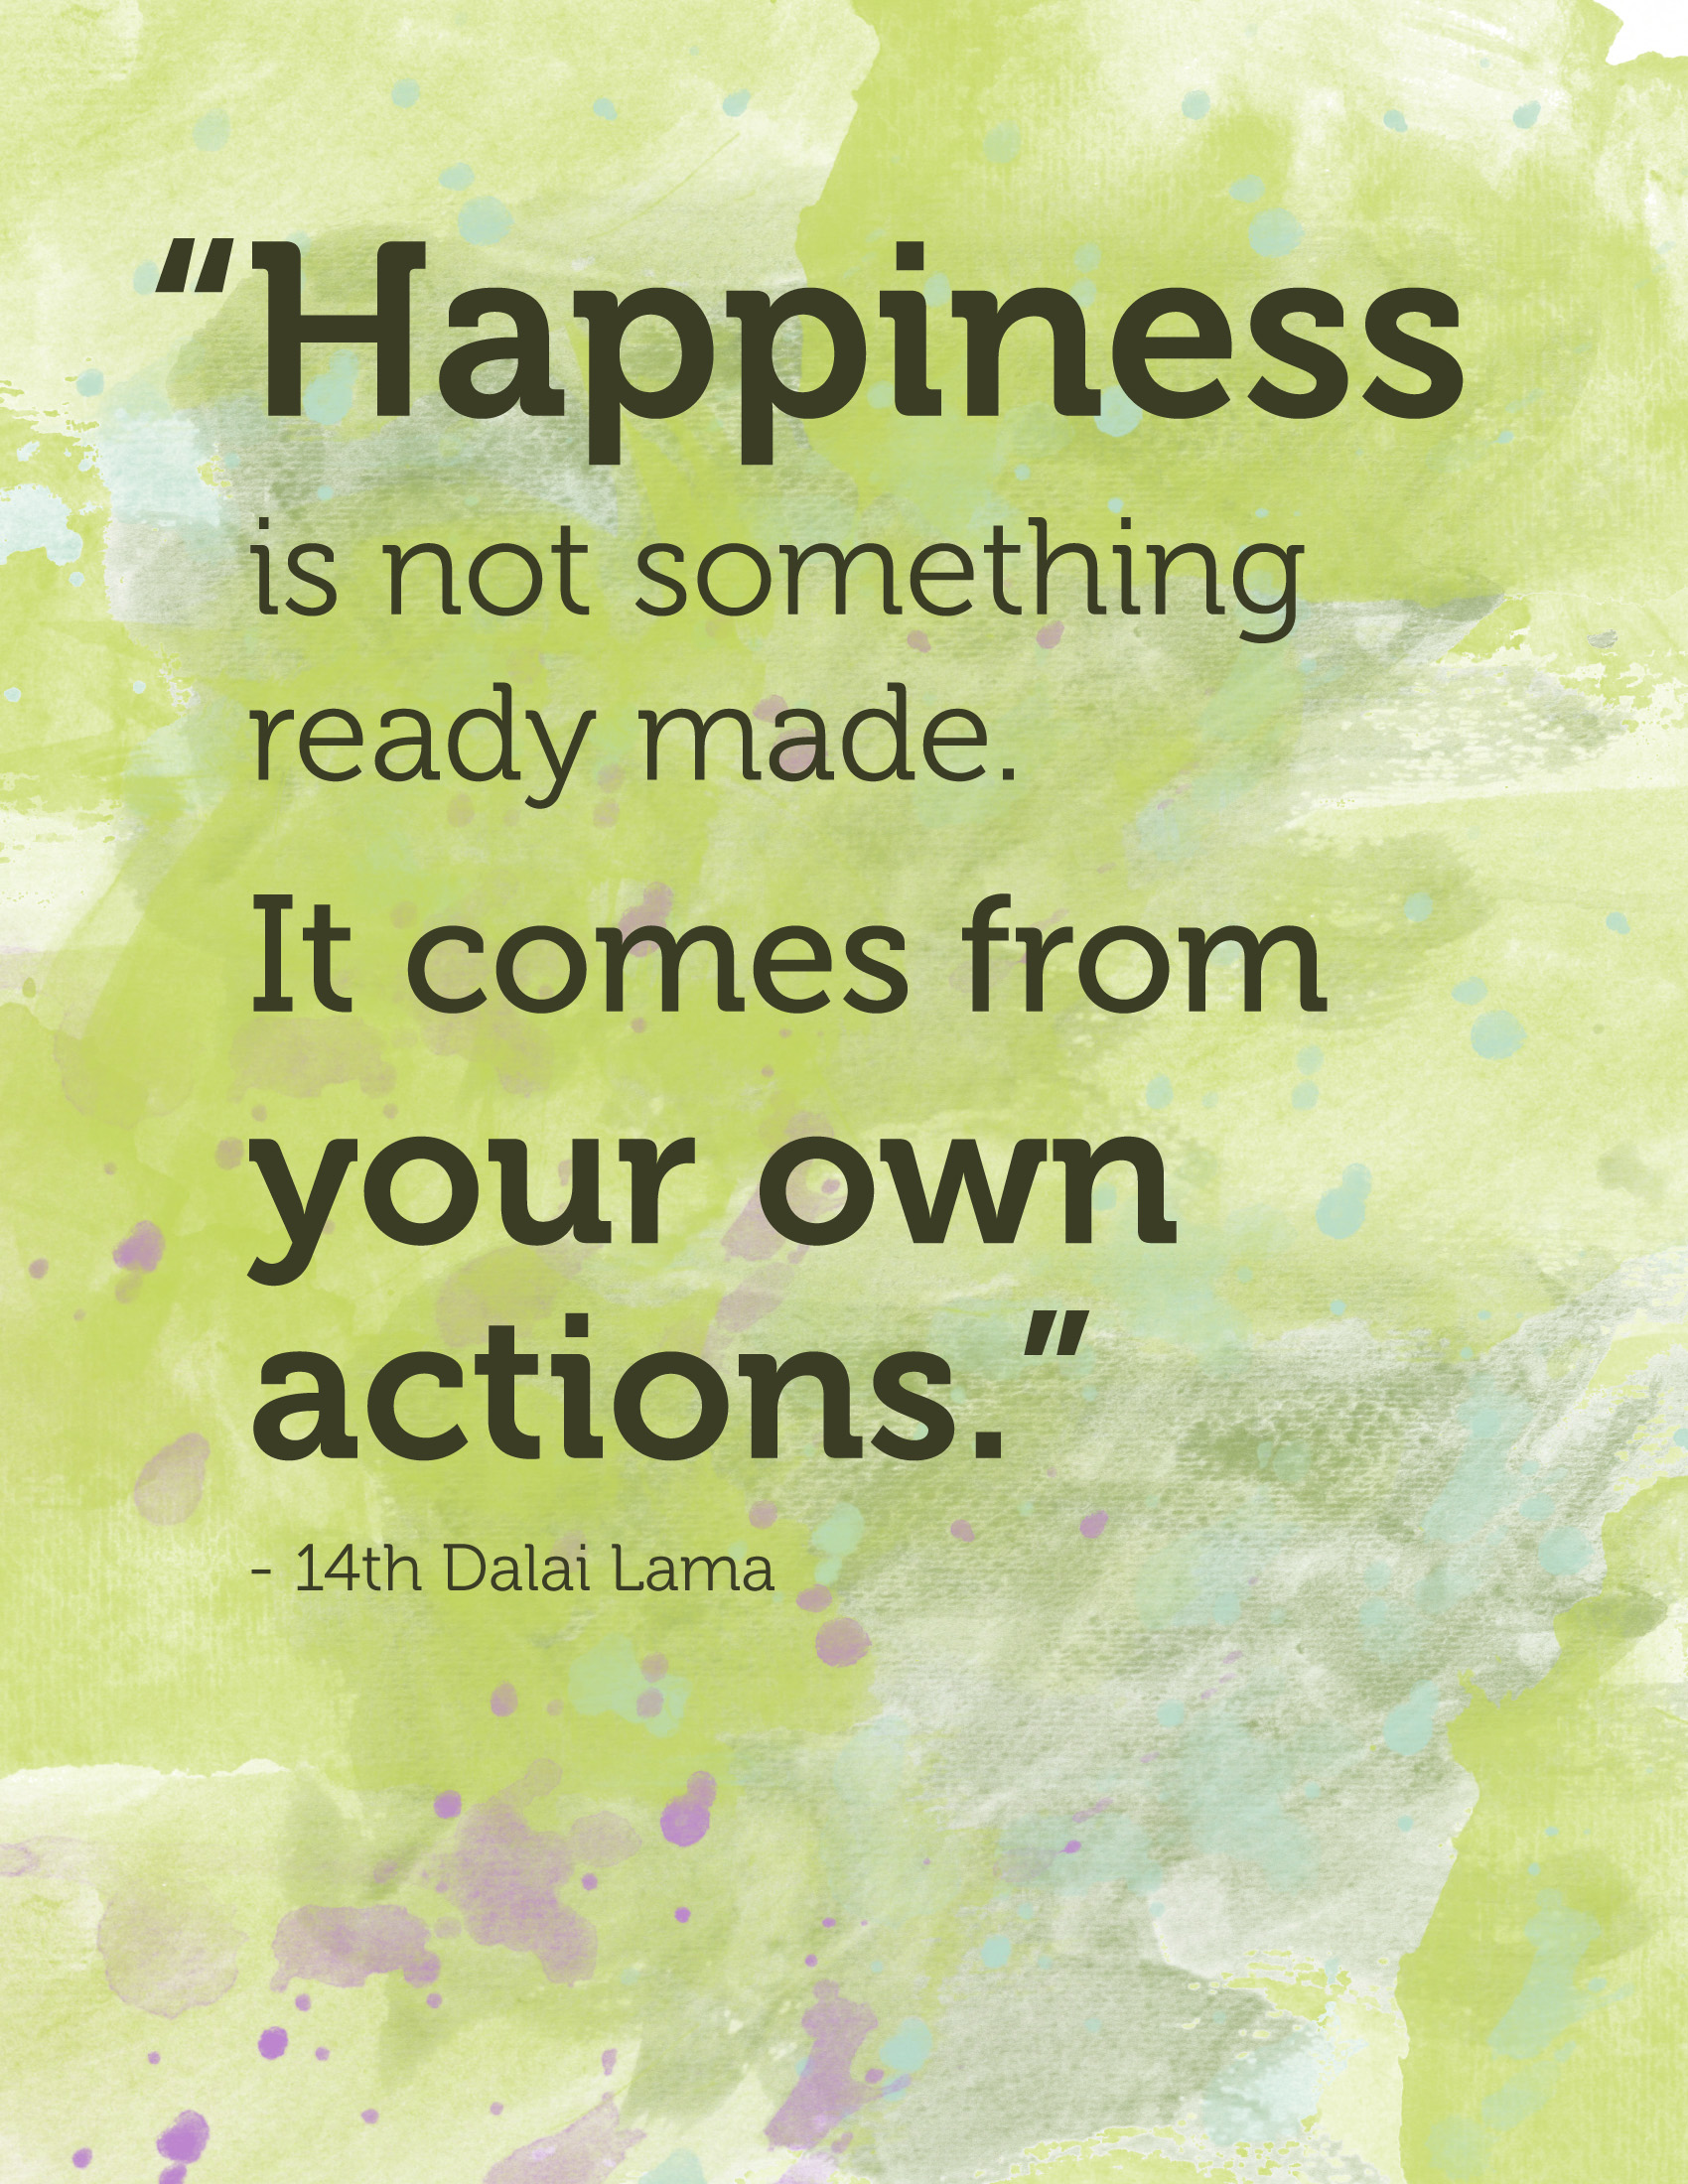 Quotes About Love And Happiness: Quotes About Happiness And Smiling. QuotesGram